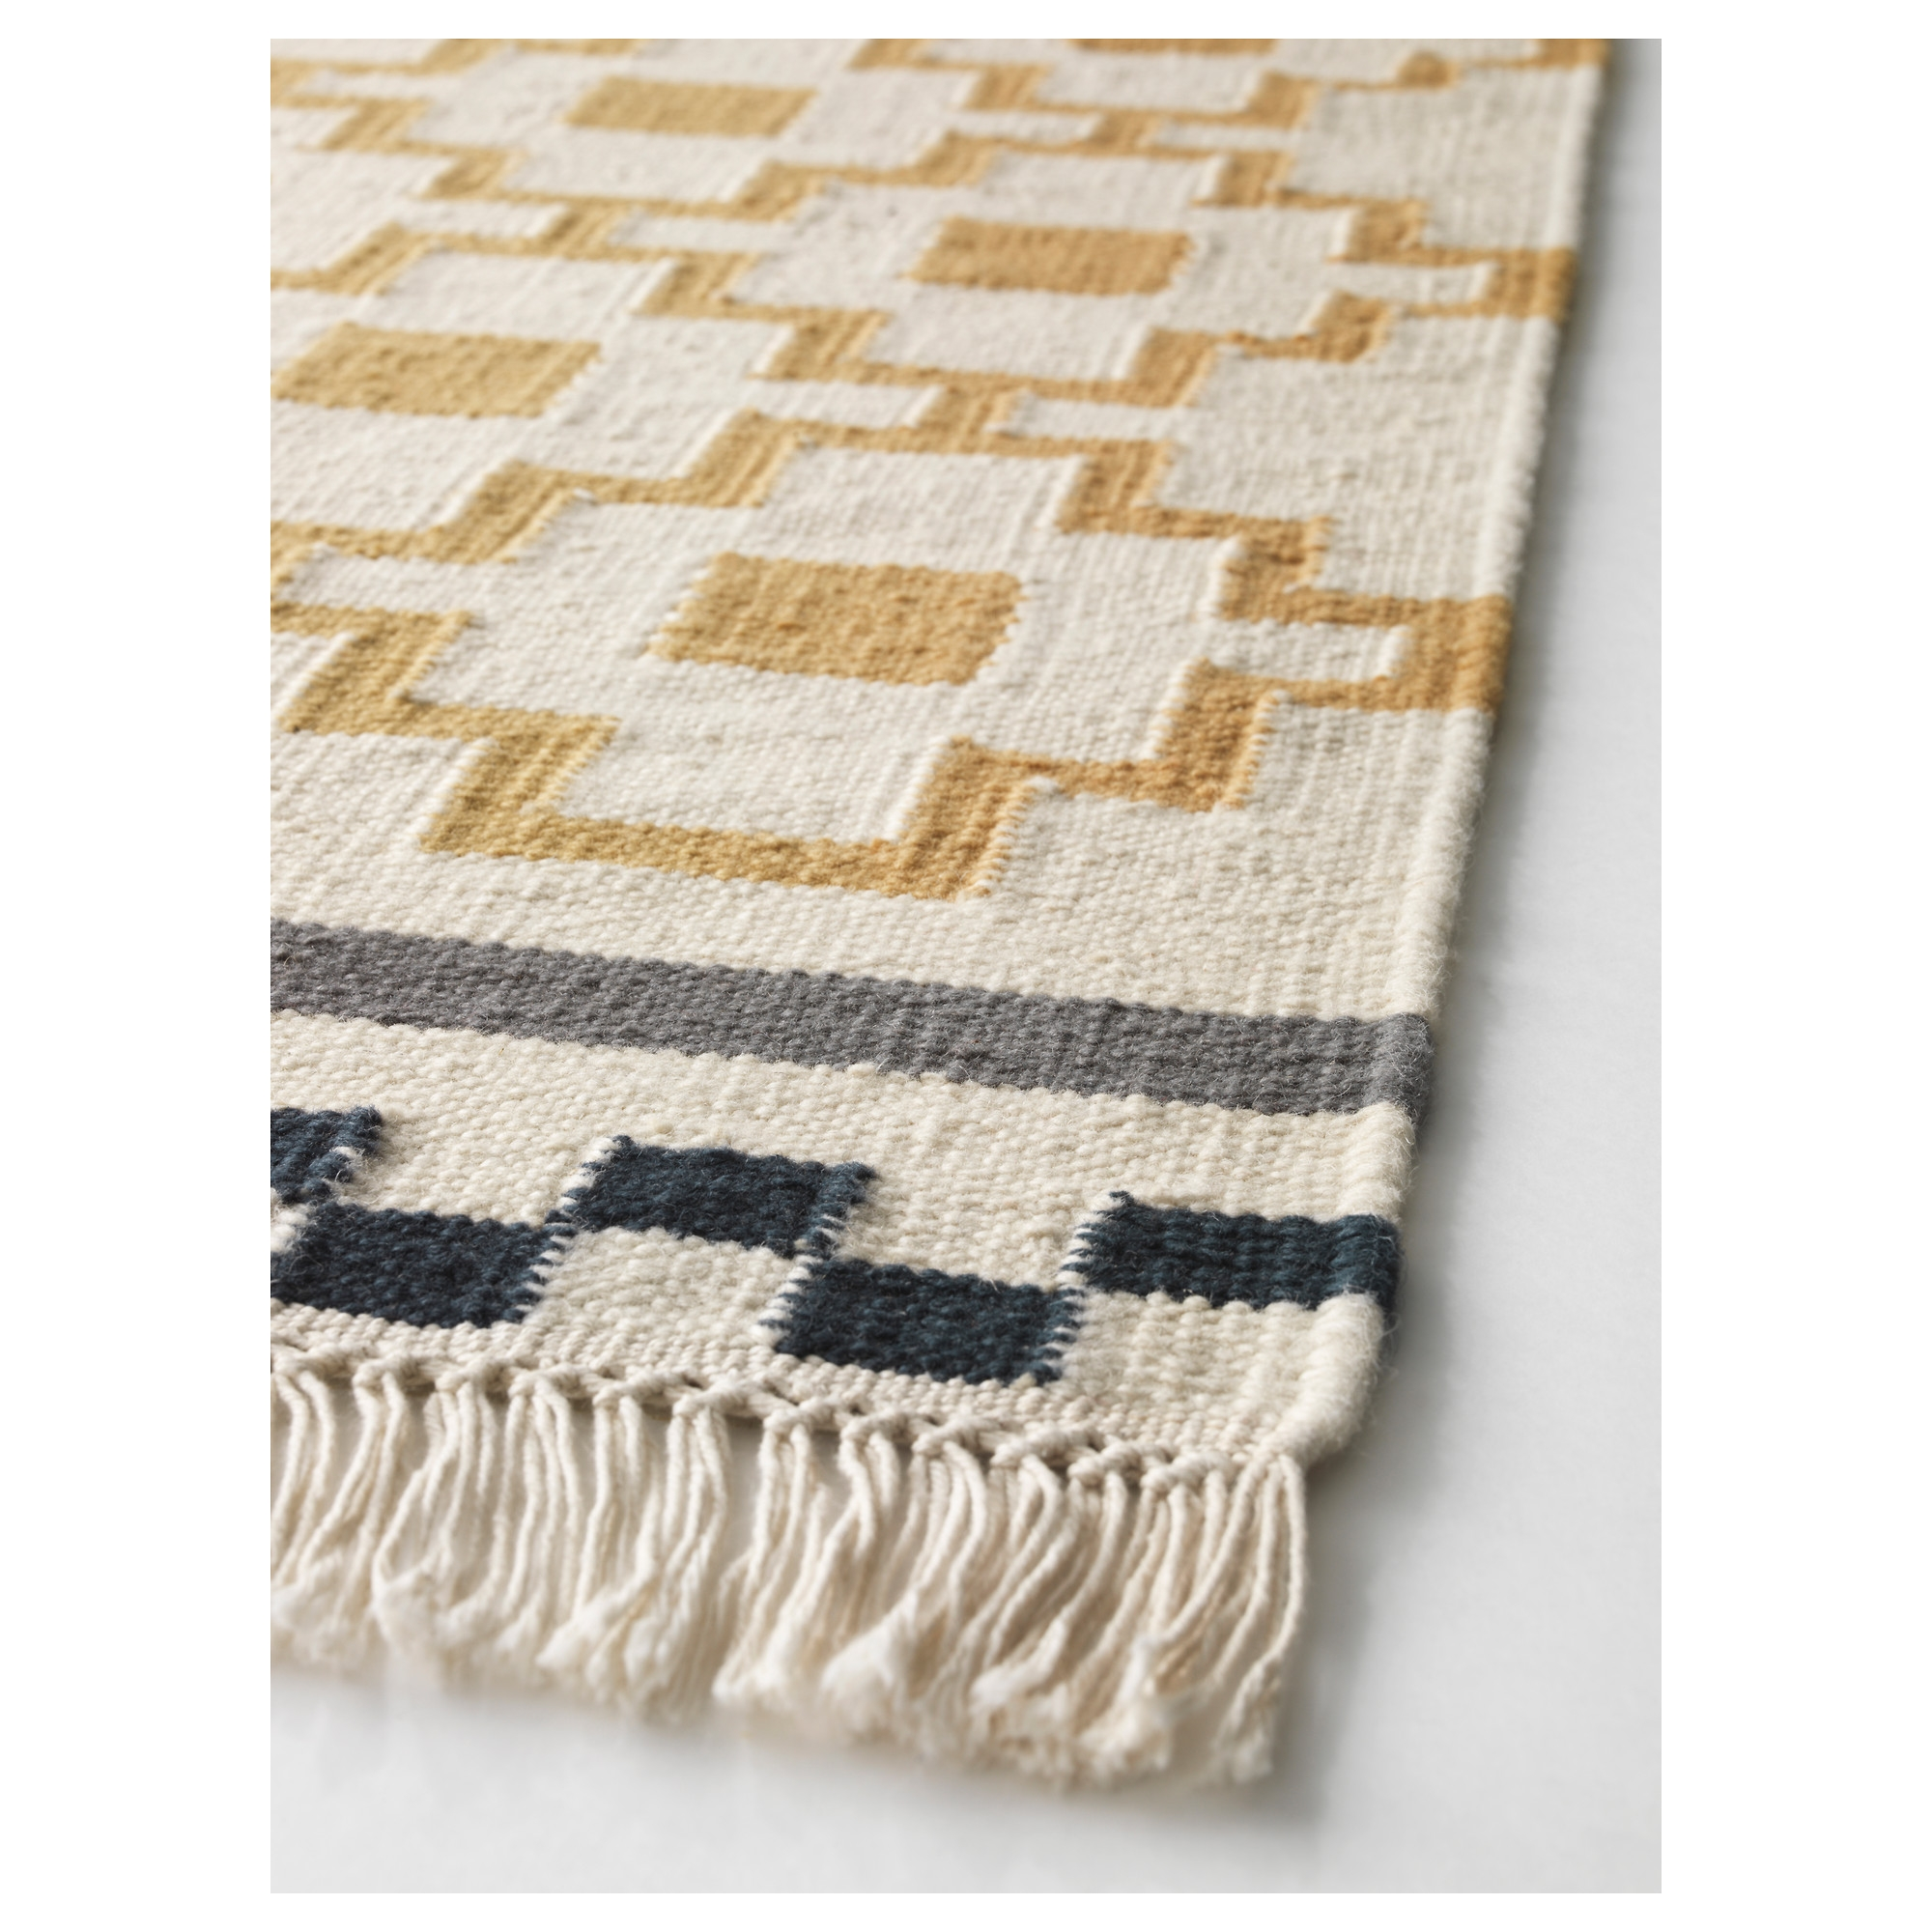 Flooring Sisal Rug Ikea Hall Runner Rugs Ikea Lappljung Rug With Hallway Runner Rugs Ikea (#7 of 20)